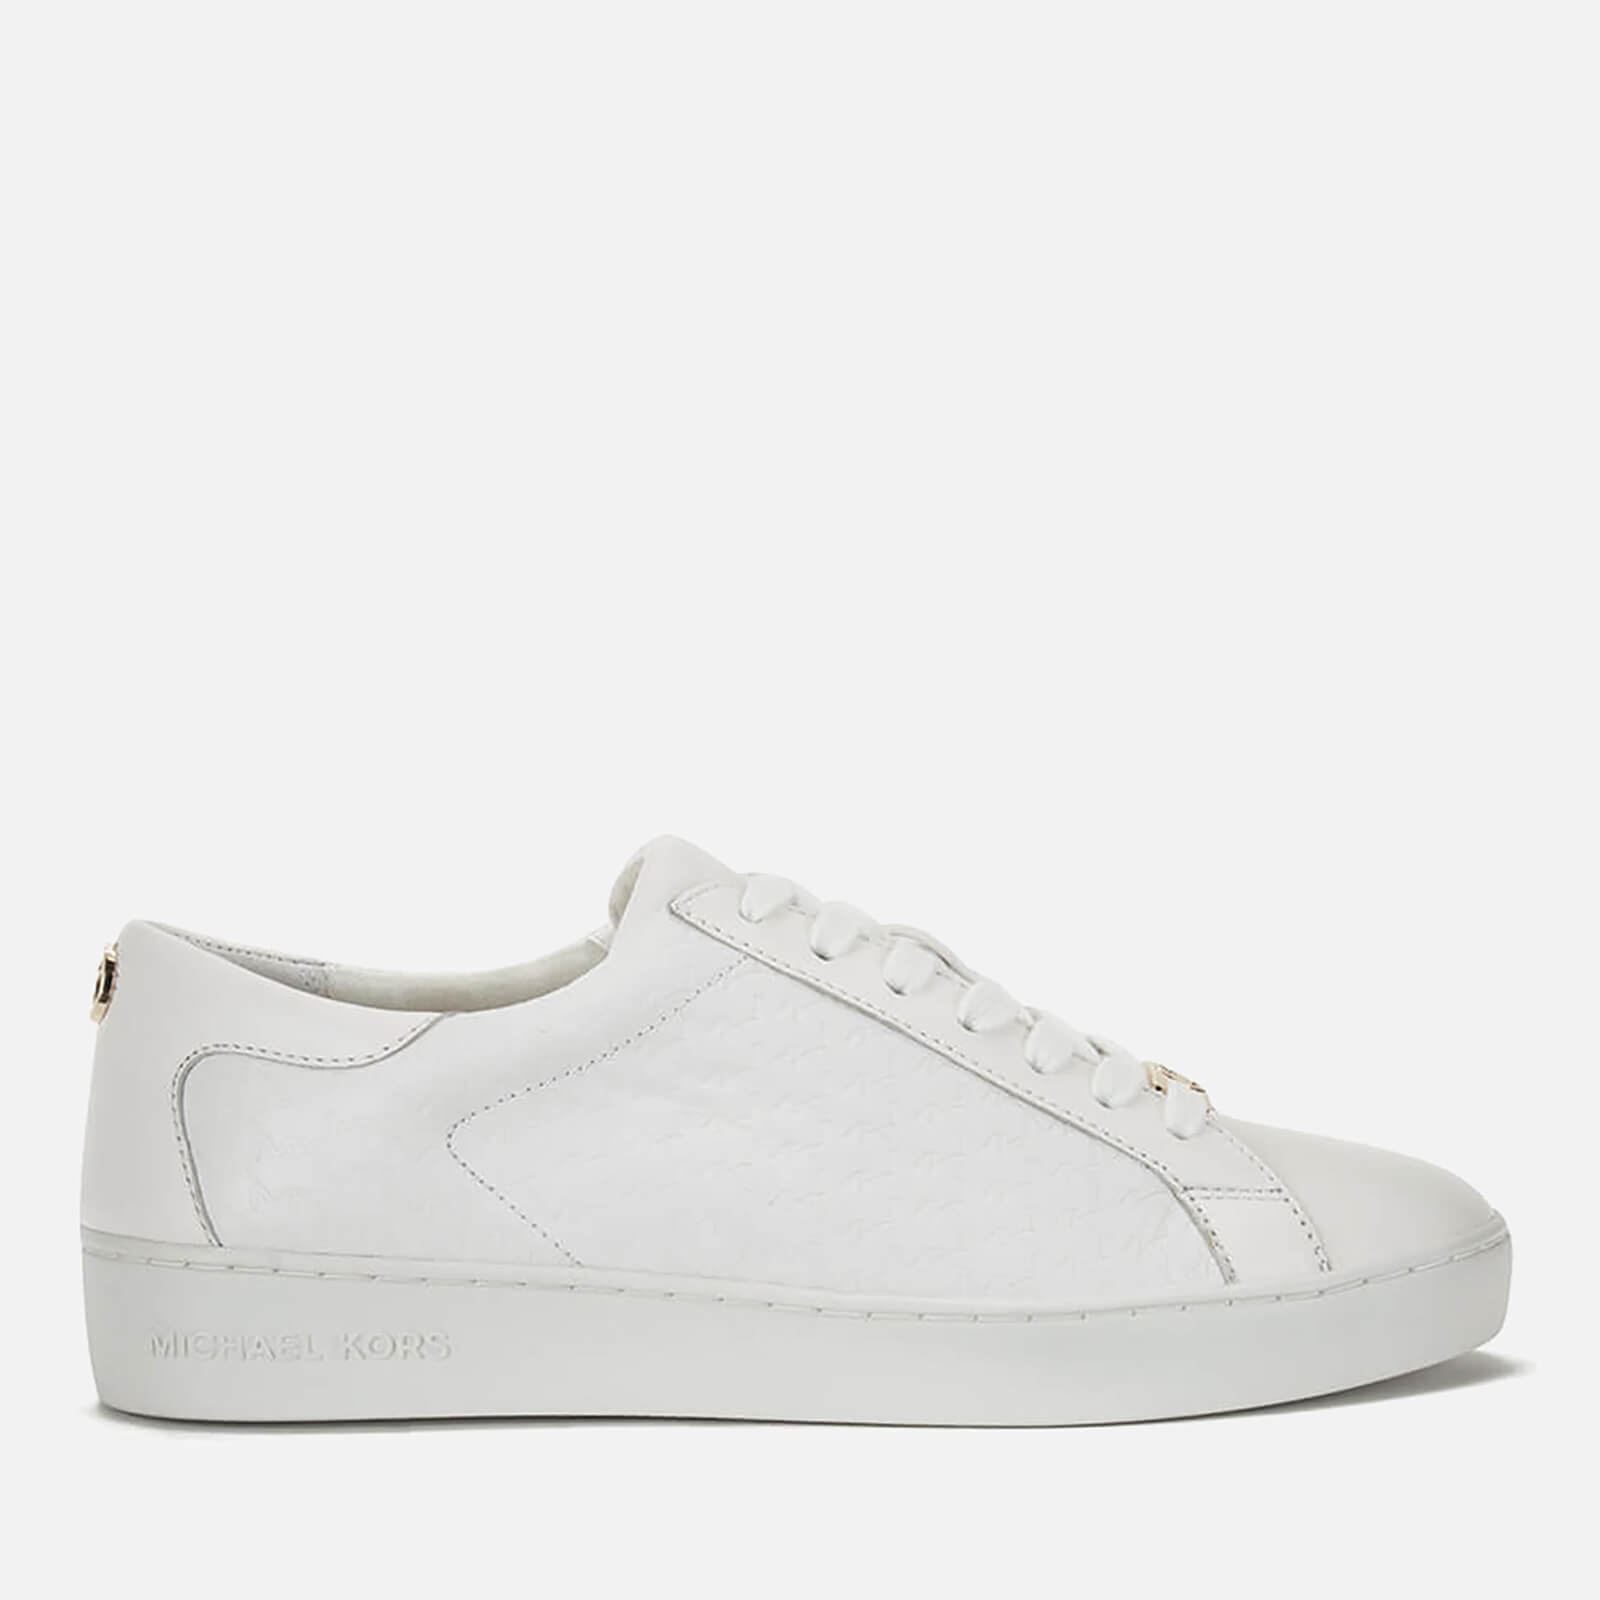 Michael Kors Women's Keaton Stripe Trainers - Vanilla - US 6/UK 3 tmcysl